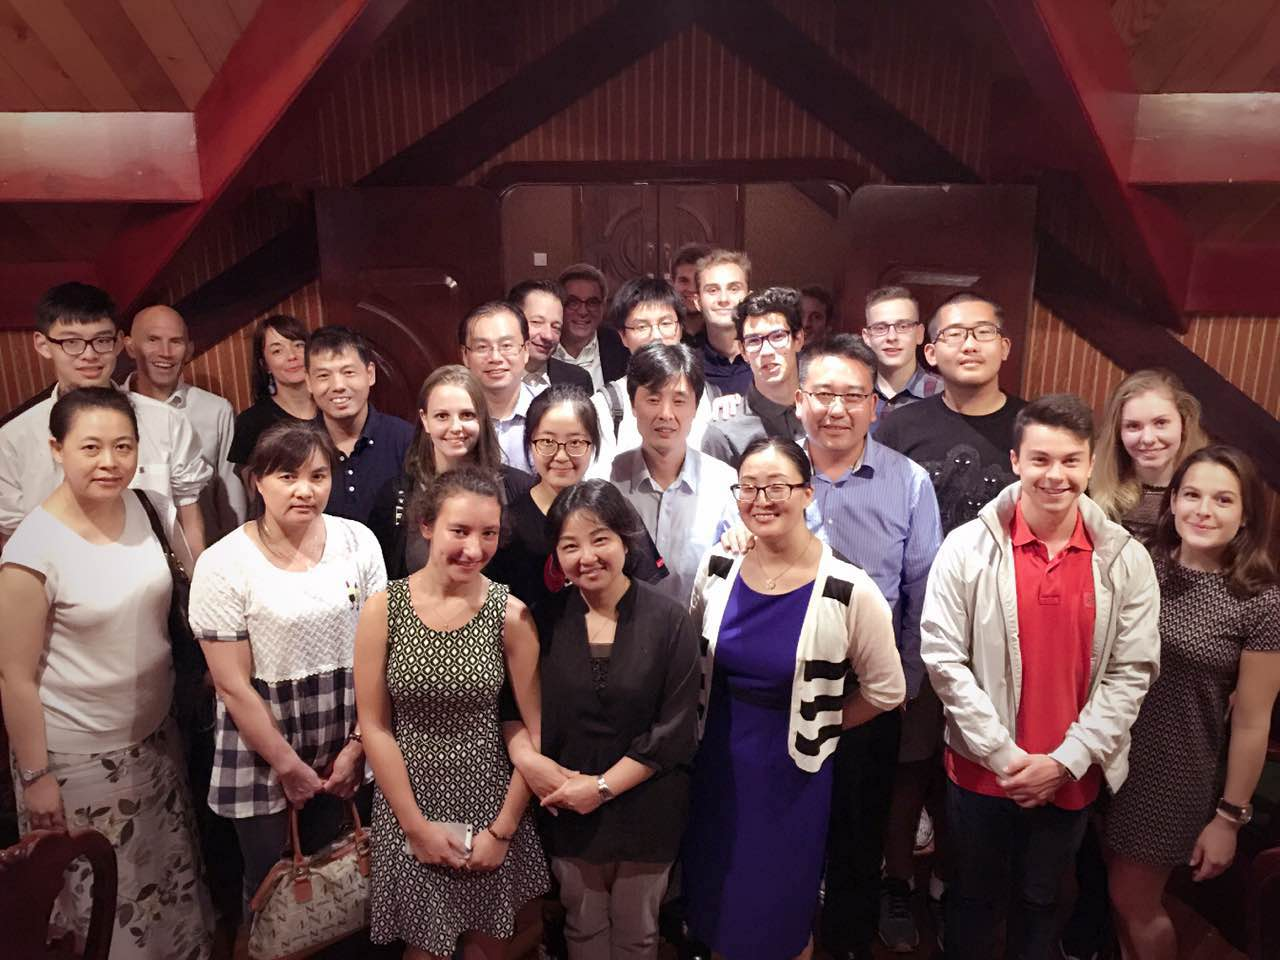 """Mr. Feuz, Head of Post-compulsory Training Service in Neuchatel, came for four days to Shanghai. We had a """"thank you"""" dinner with all host families and partners."""